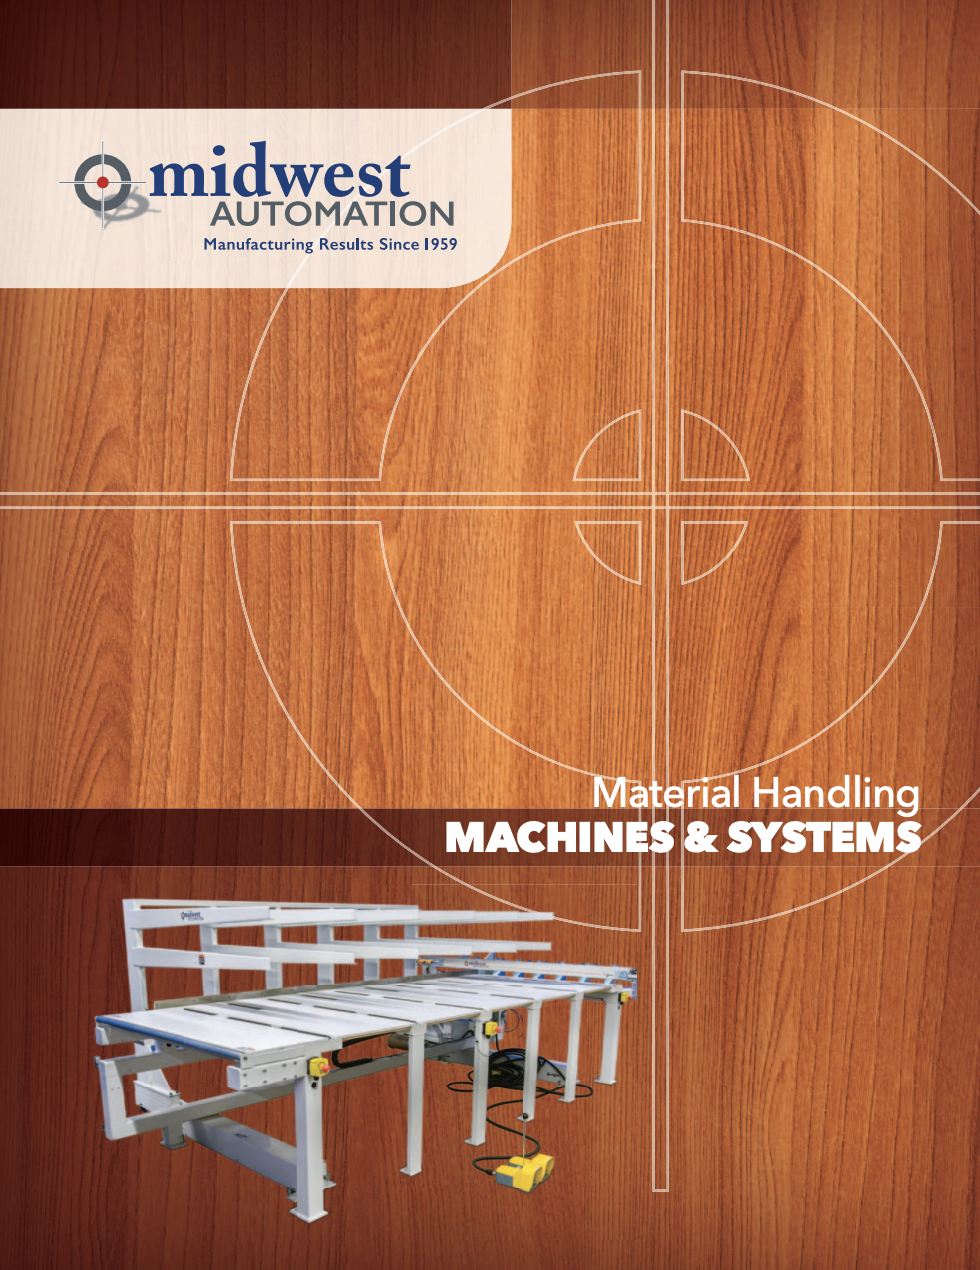 2019Material Handling Machines & Systems